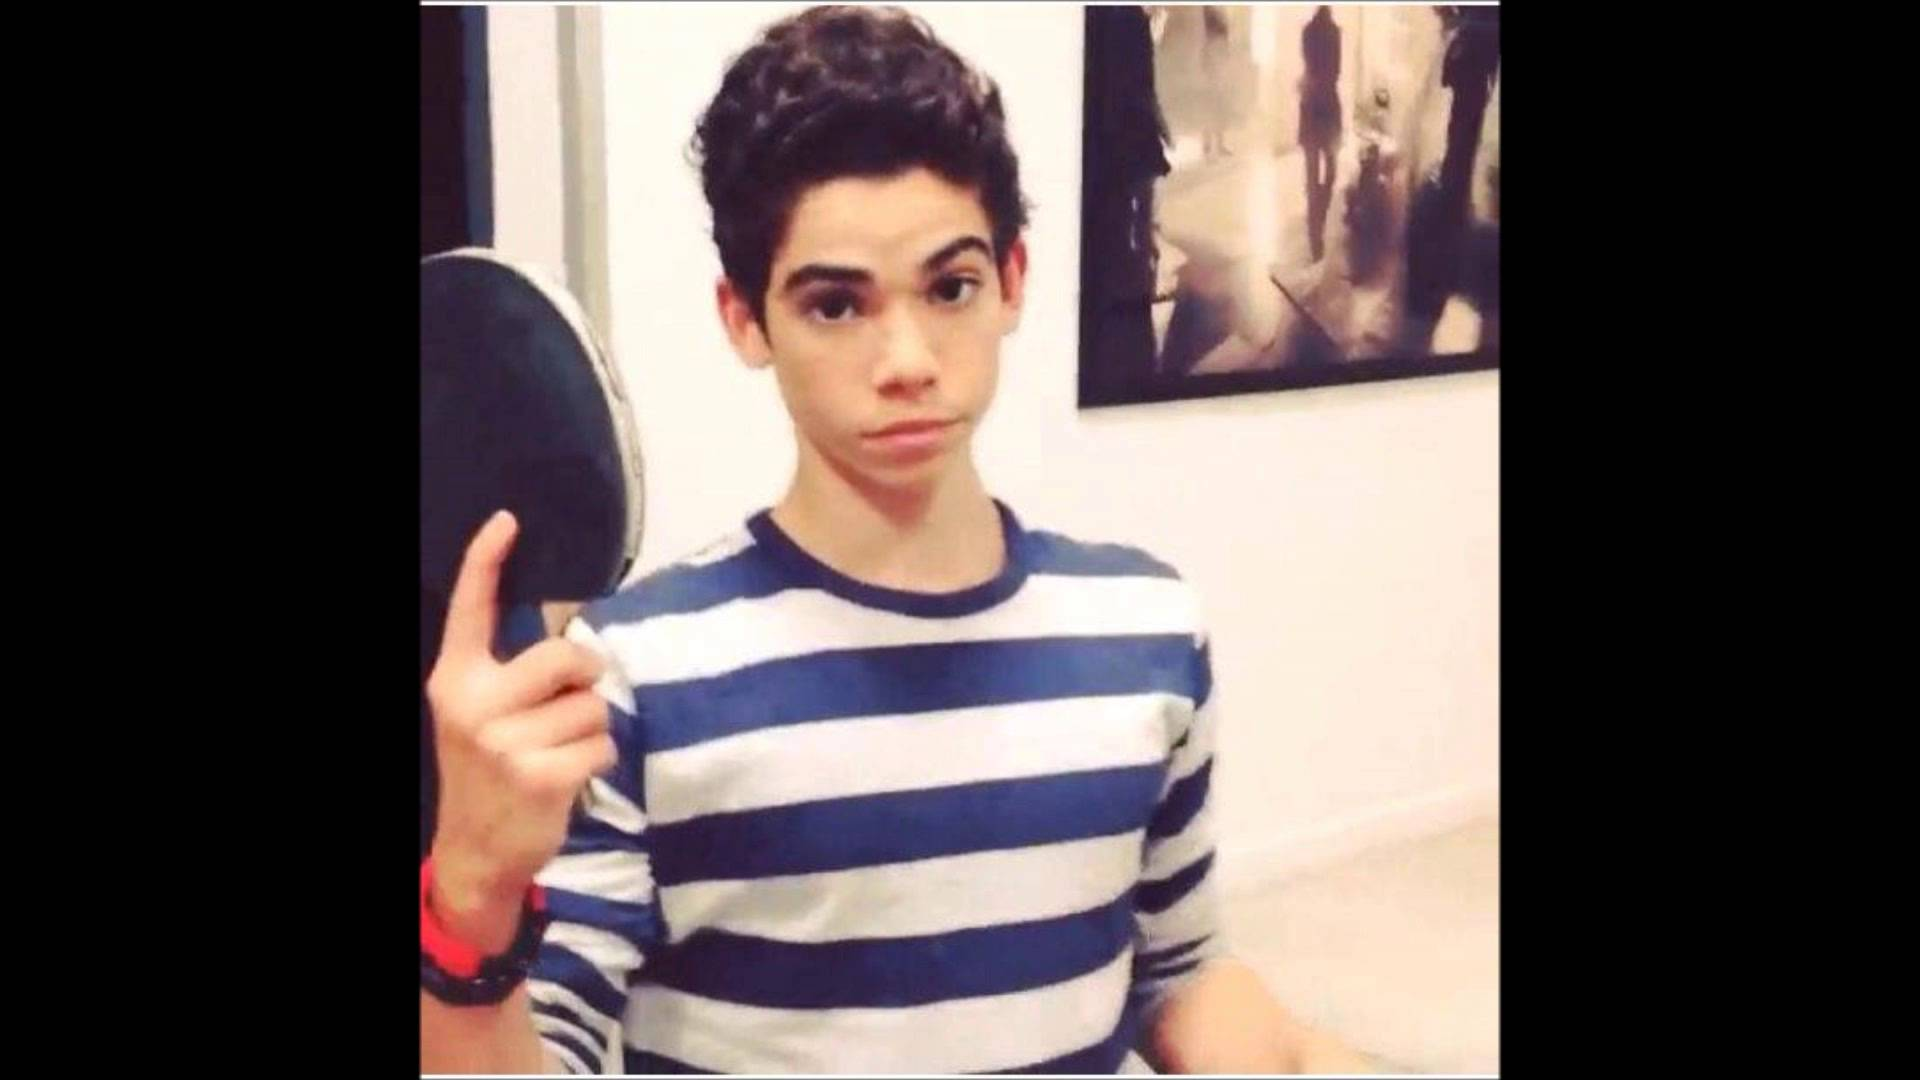 Cameron Boyce Wallpapers Celebrity Hq Cameron Boyce Pictures 4k Wallpapers 2019